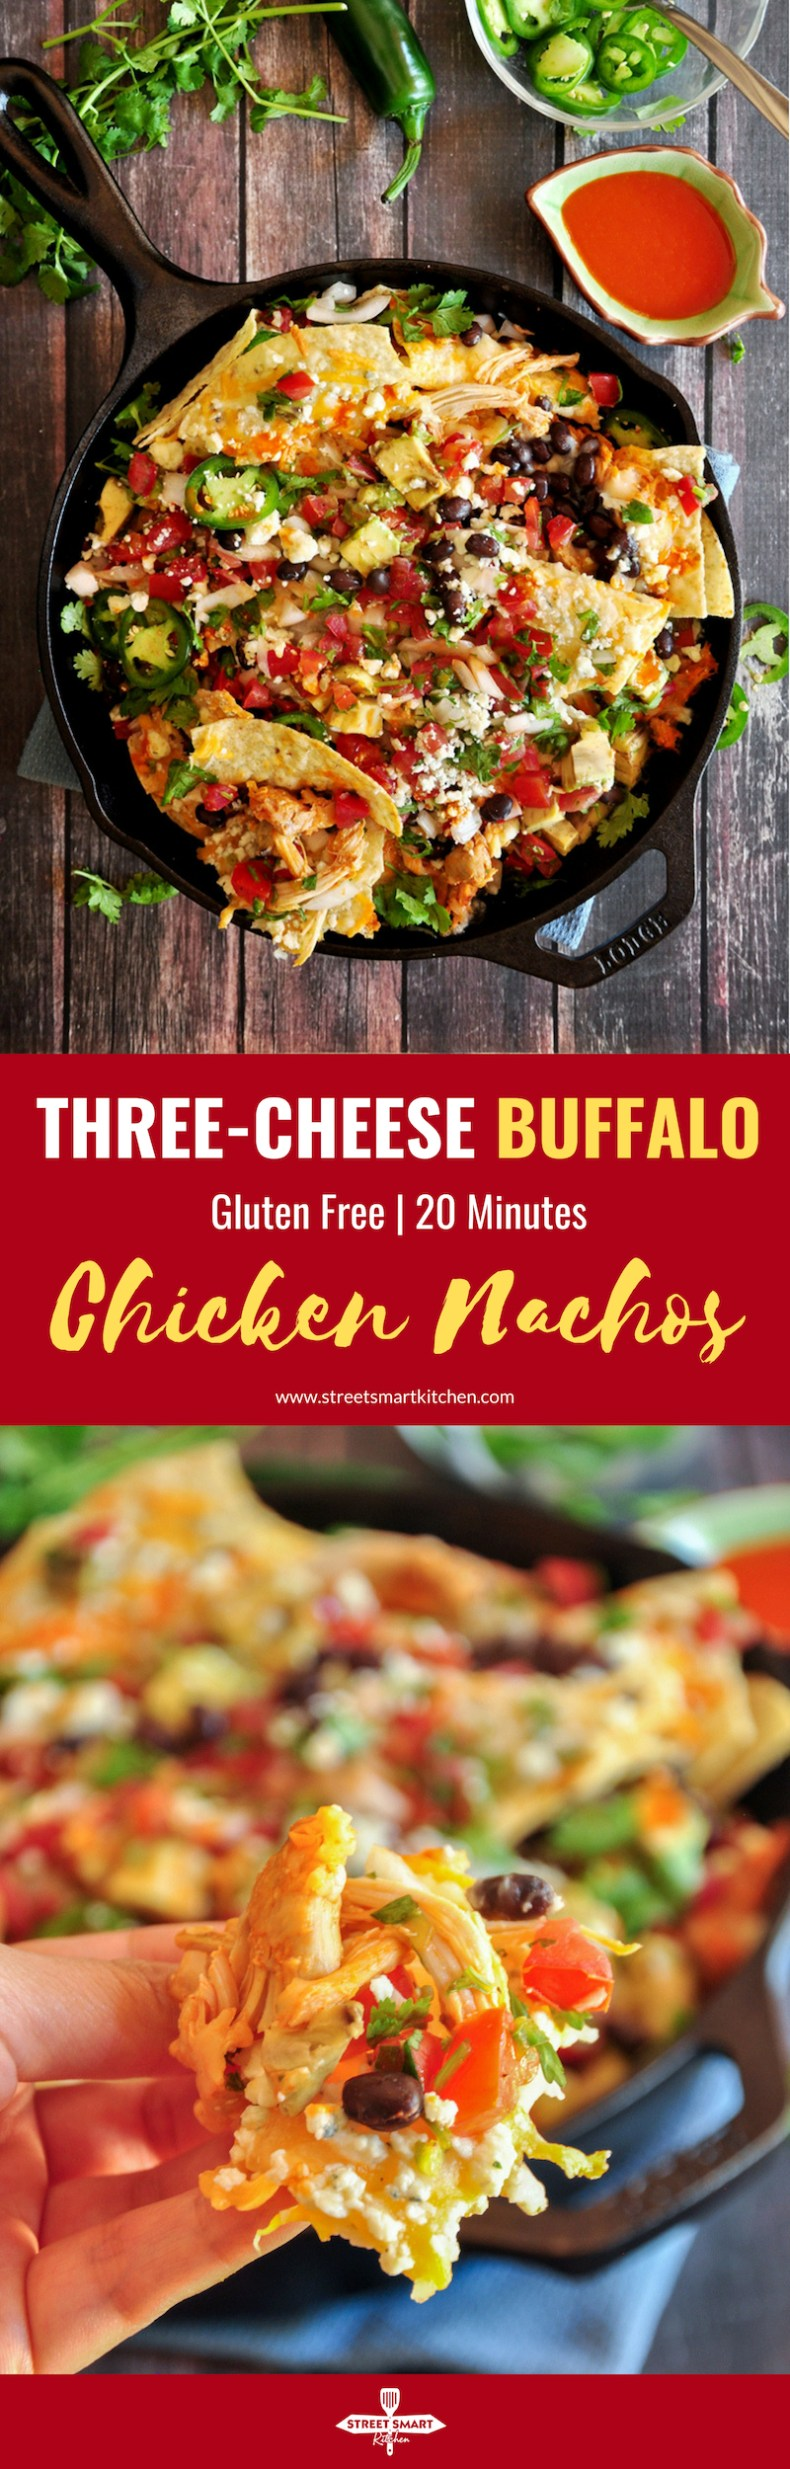 The best gooey, tangy, spicy buffalo chicken nachos you've ever had. Loaded with three types of cheese and fresh, Mexican-style ingredients. Ready in 20 minutes.